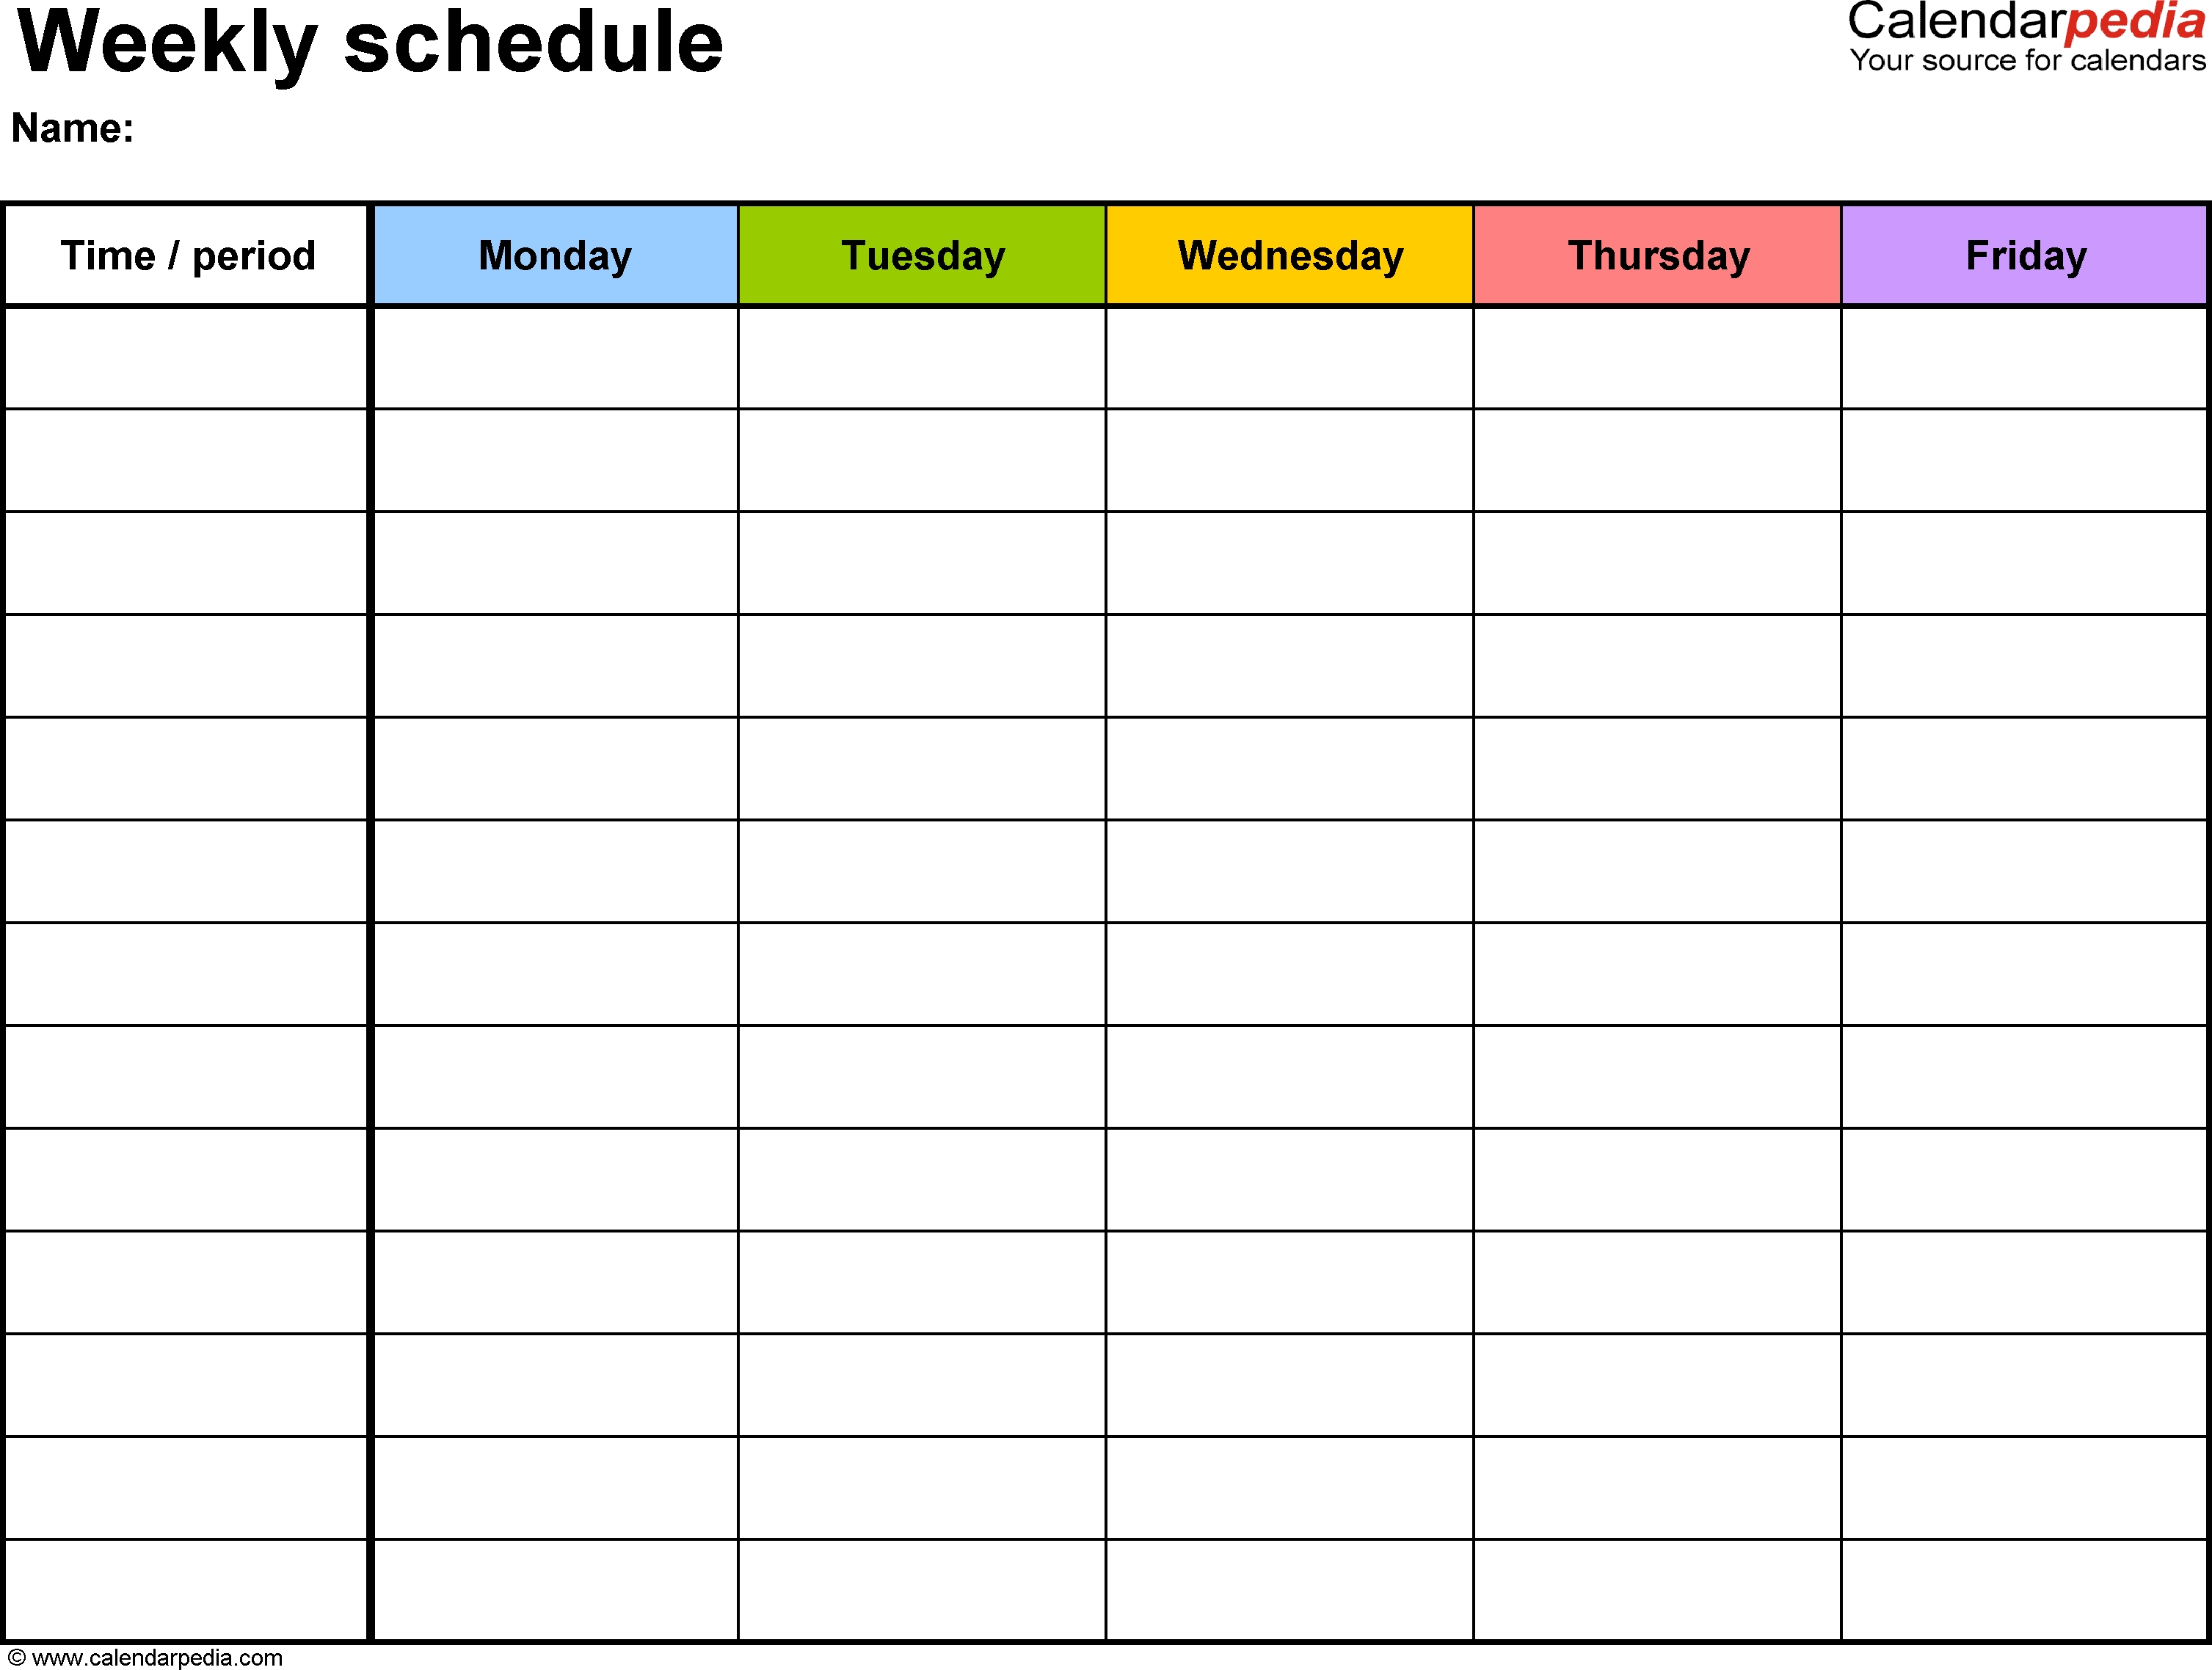 Free Weekly Schedule Templates For Word - 18 Templates within Printable 7-Day Calendar Template Monday Starts With That